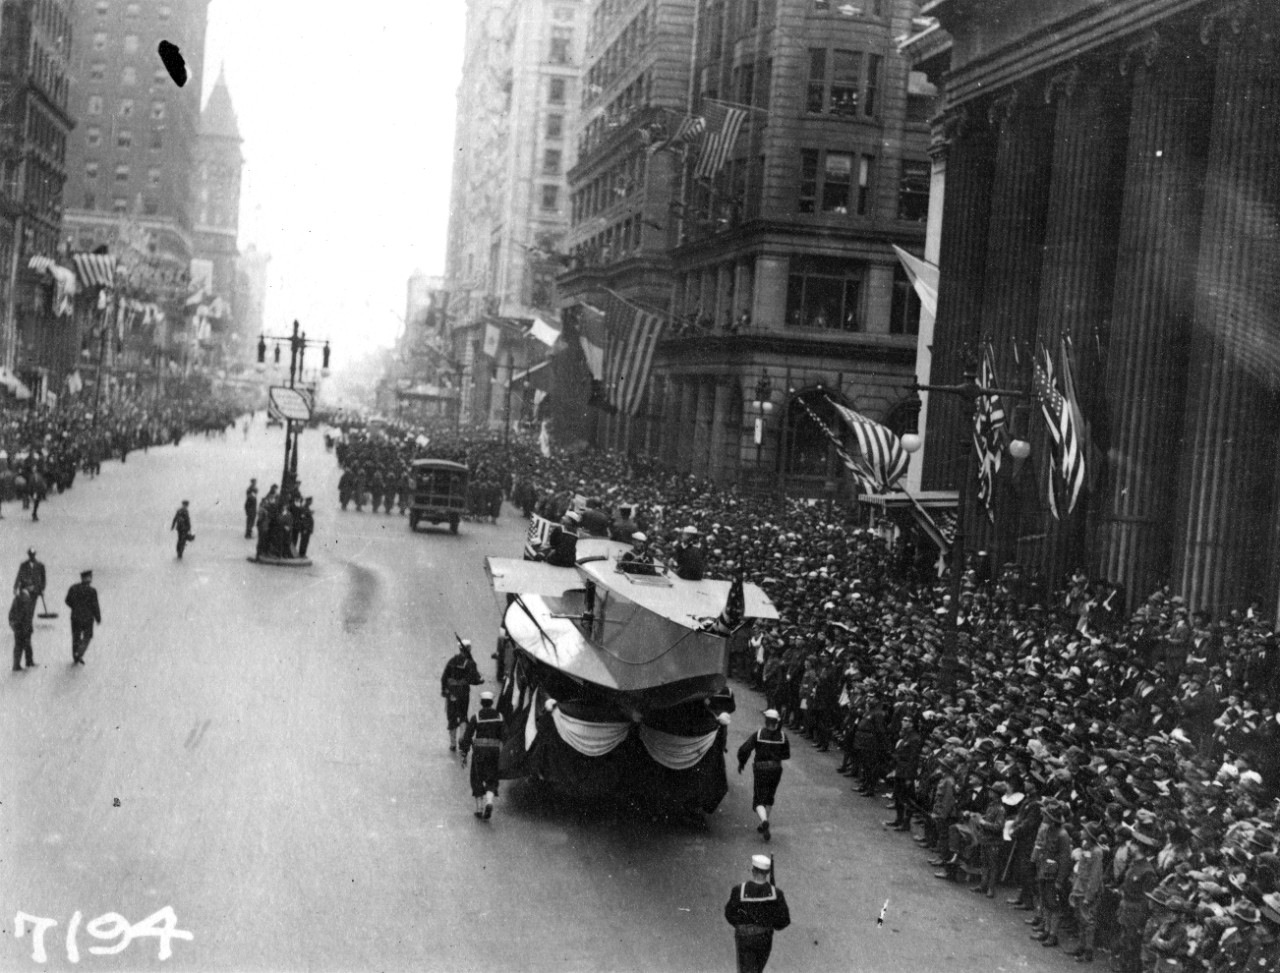 Mütter Museum is reviving a 1918 Philly parade that sparked a killer flu outbreak